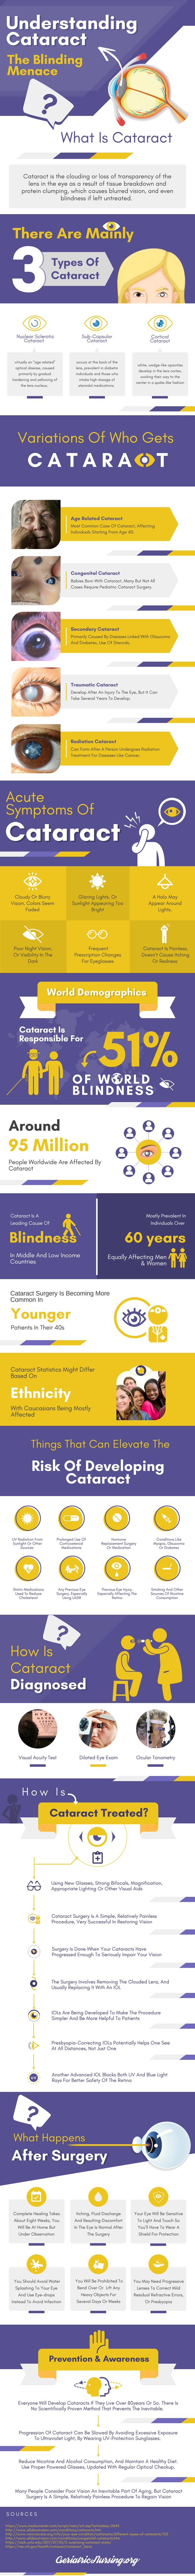 Cataracts, NAC eye drops, and other non-surgical treatments